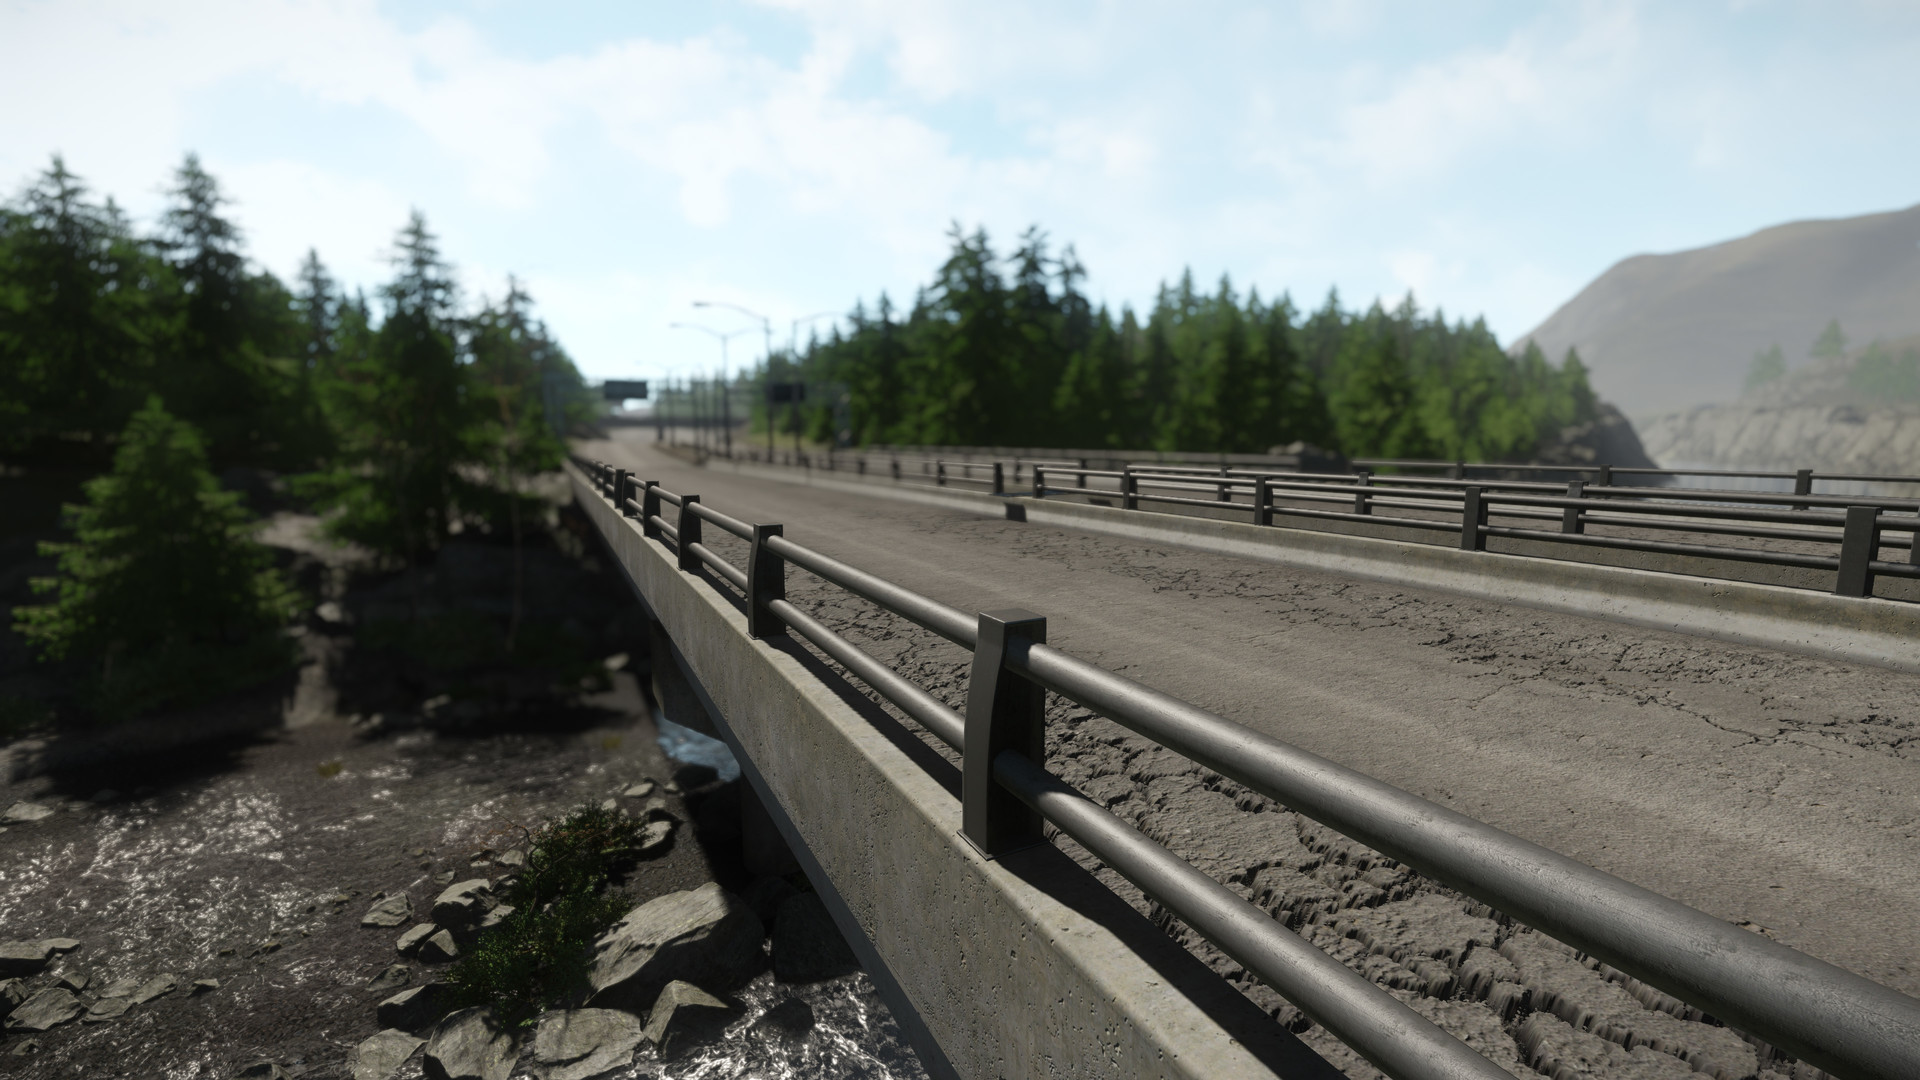 The Highway bridge allows for travel over rivers and acts as a highway Overpass.